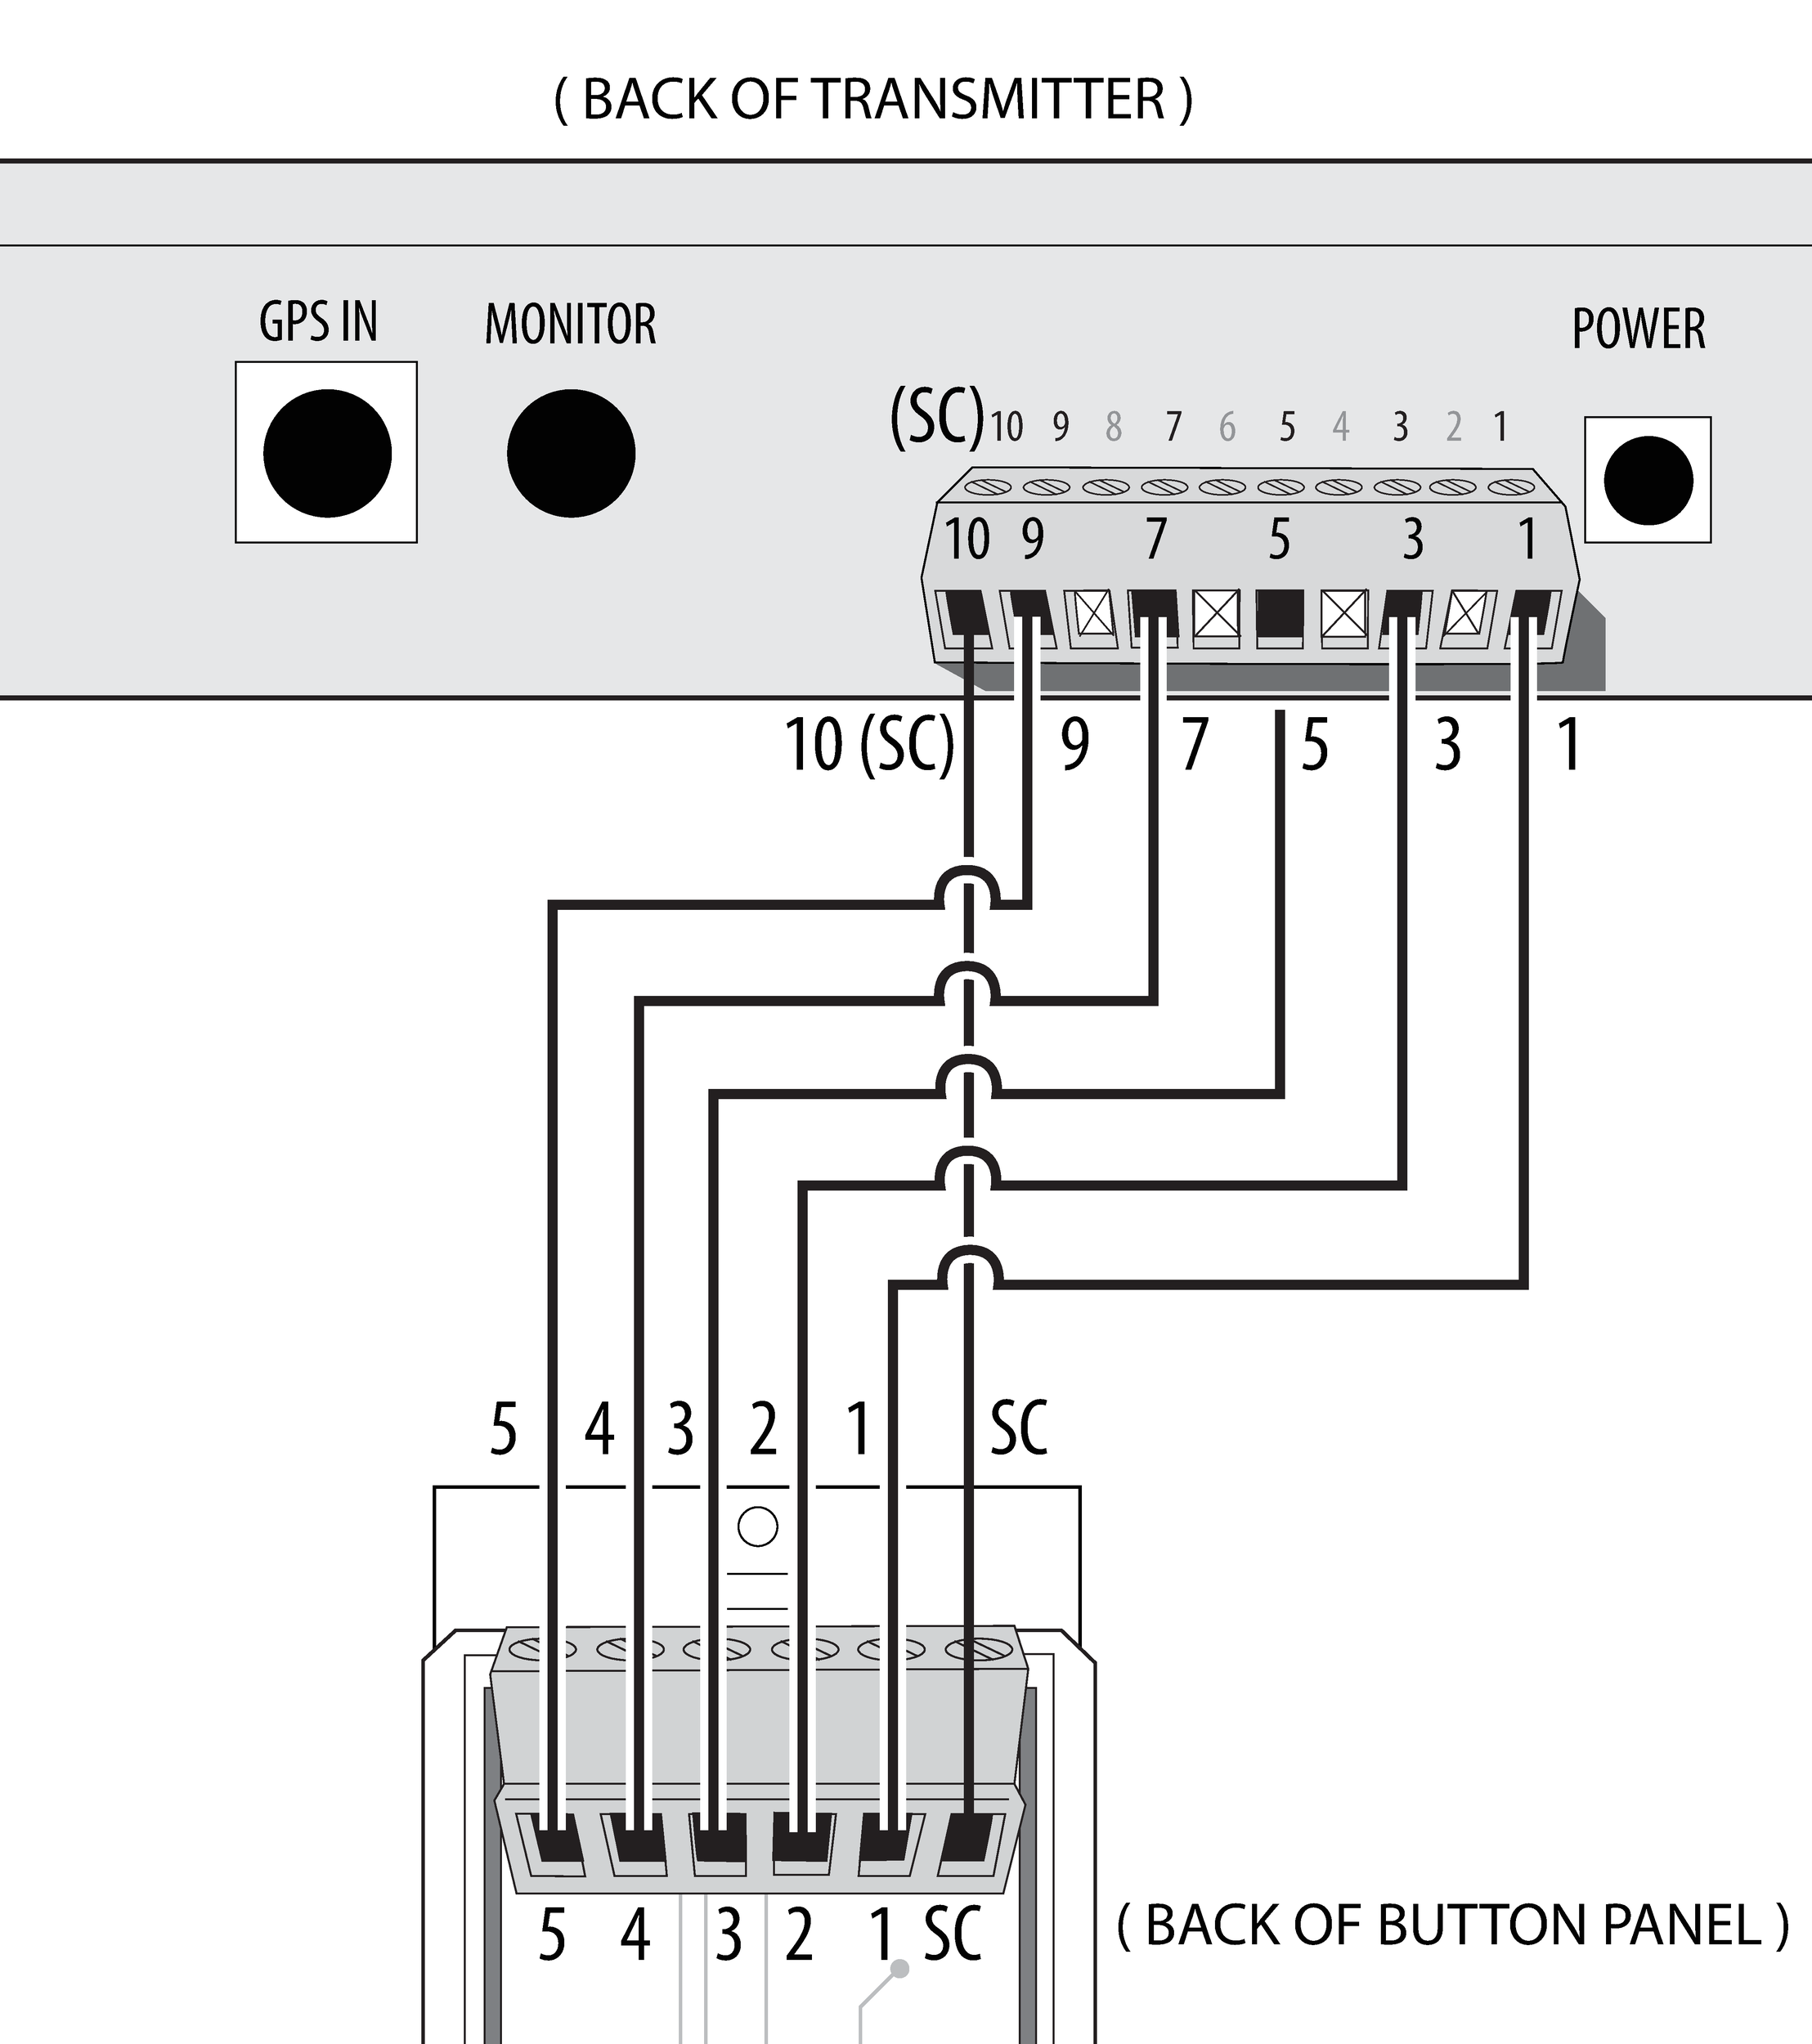 wiring-panel-to-transmitter.png